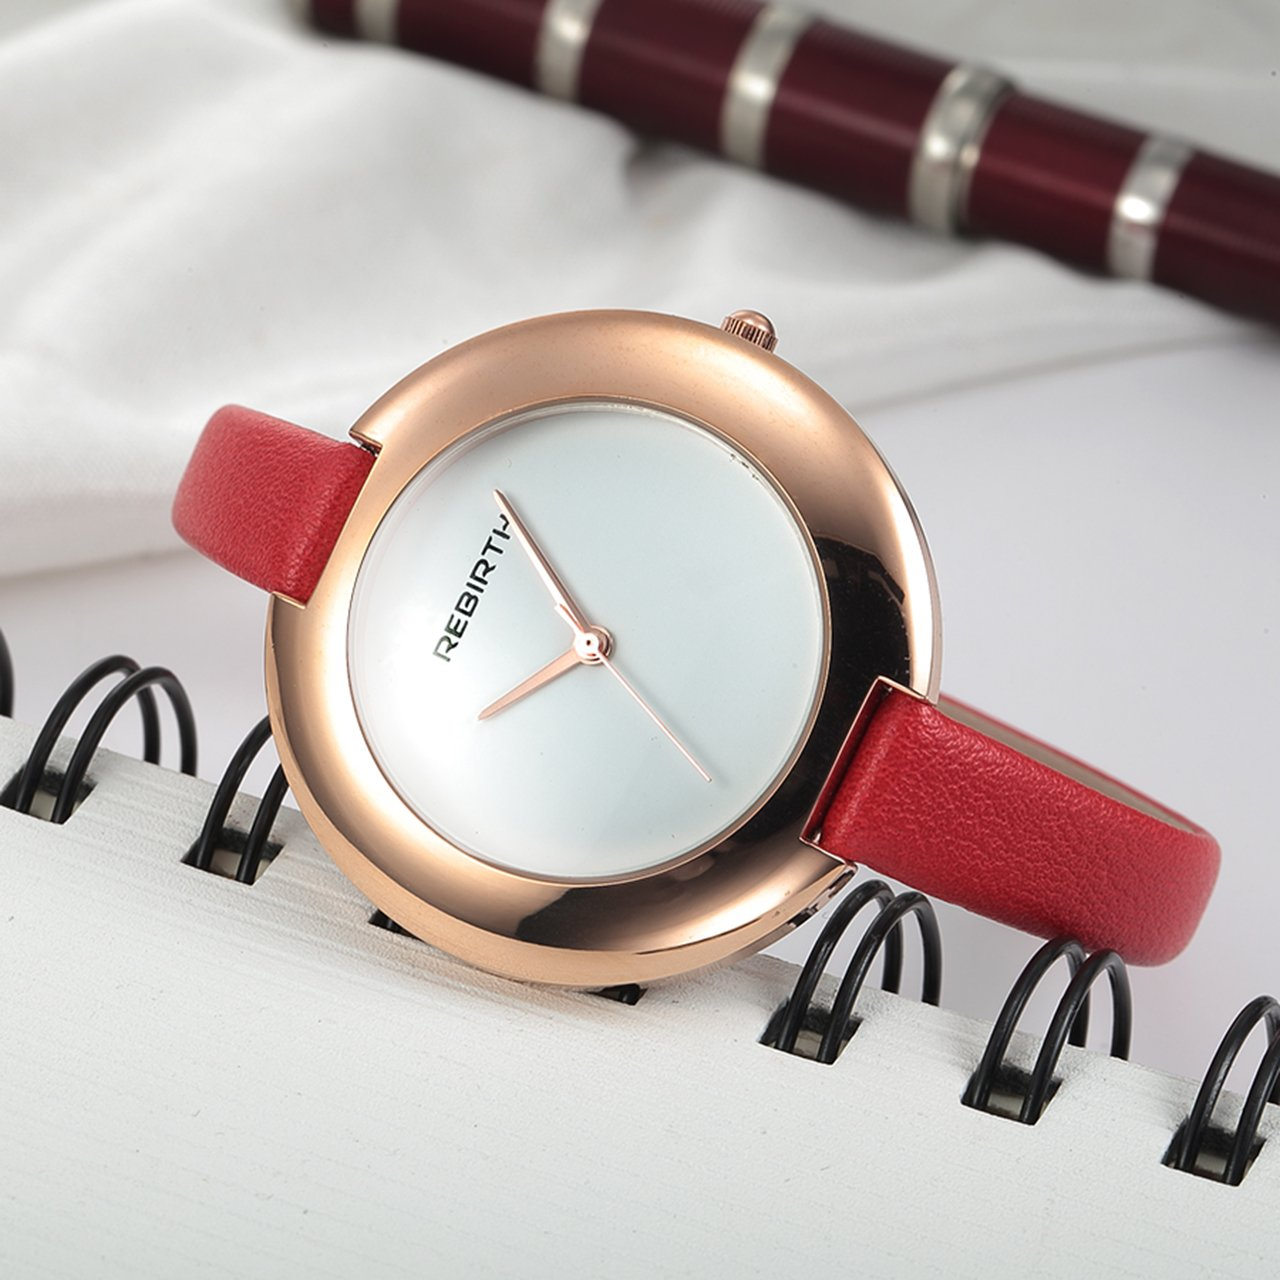 Top Plaza Ladies Red Fashion Big Face Watch Analog Quartz Thin PU Leather Blank Space Dial Daily Waterproof by Top Plaza (Image #3)